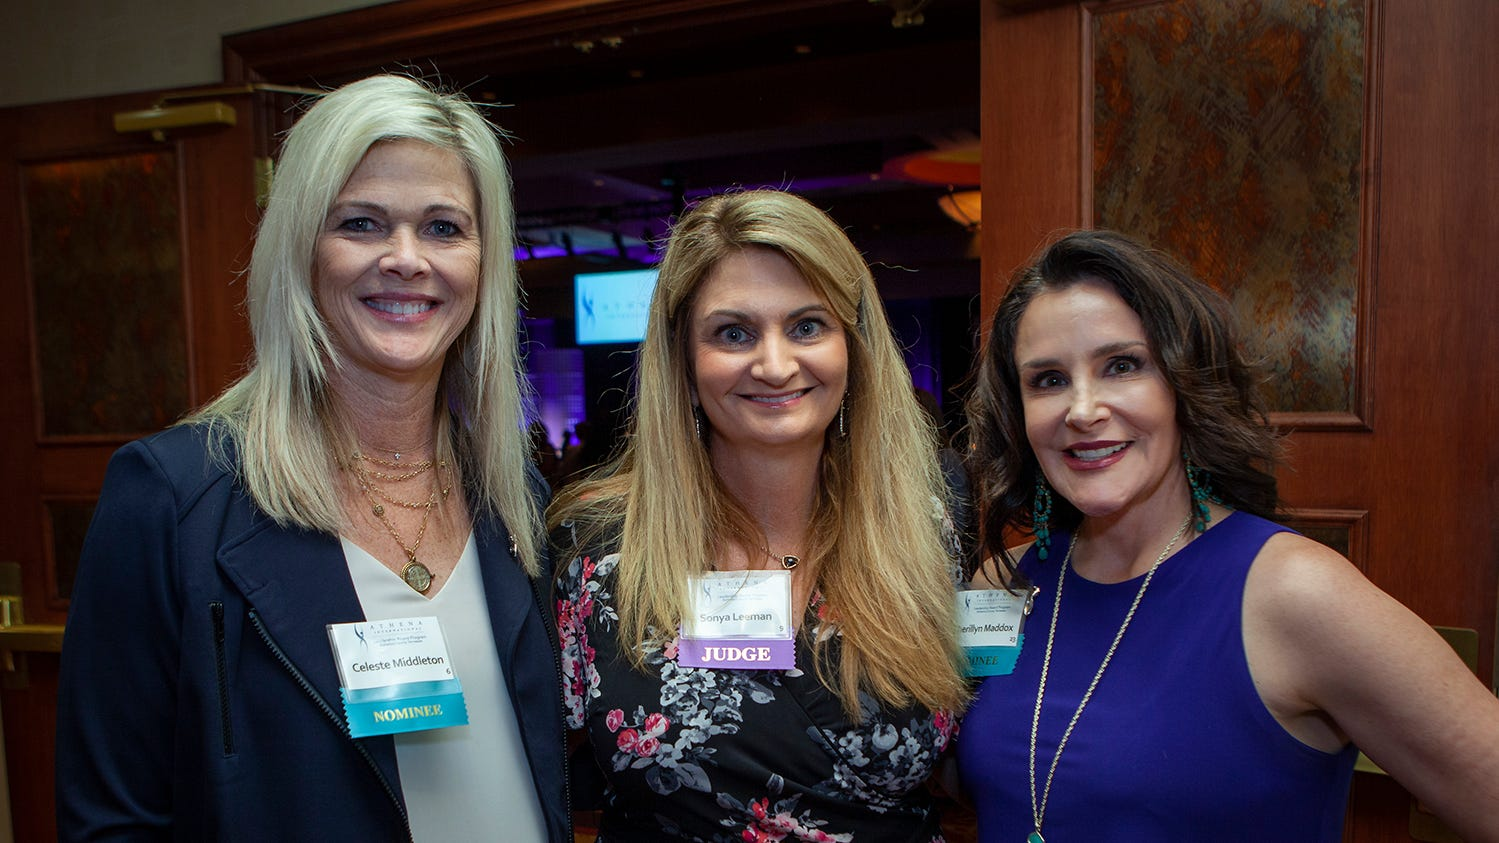 Celeste Middleton, Sonya Leeman and Cherillyn Maddox at the annual ATHENA Leadership Awards. Rutherford Cable  held the event Friday, April 12, 2019 at Embassy Suites Murfreesboro.